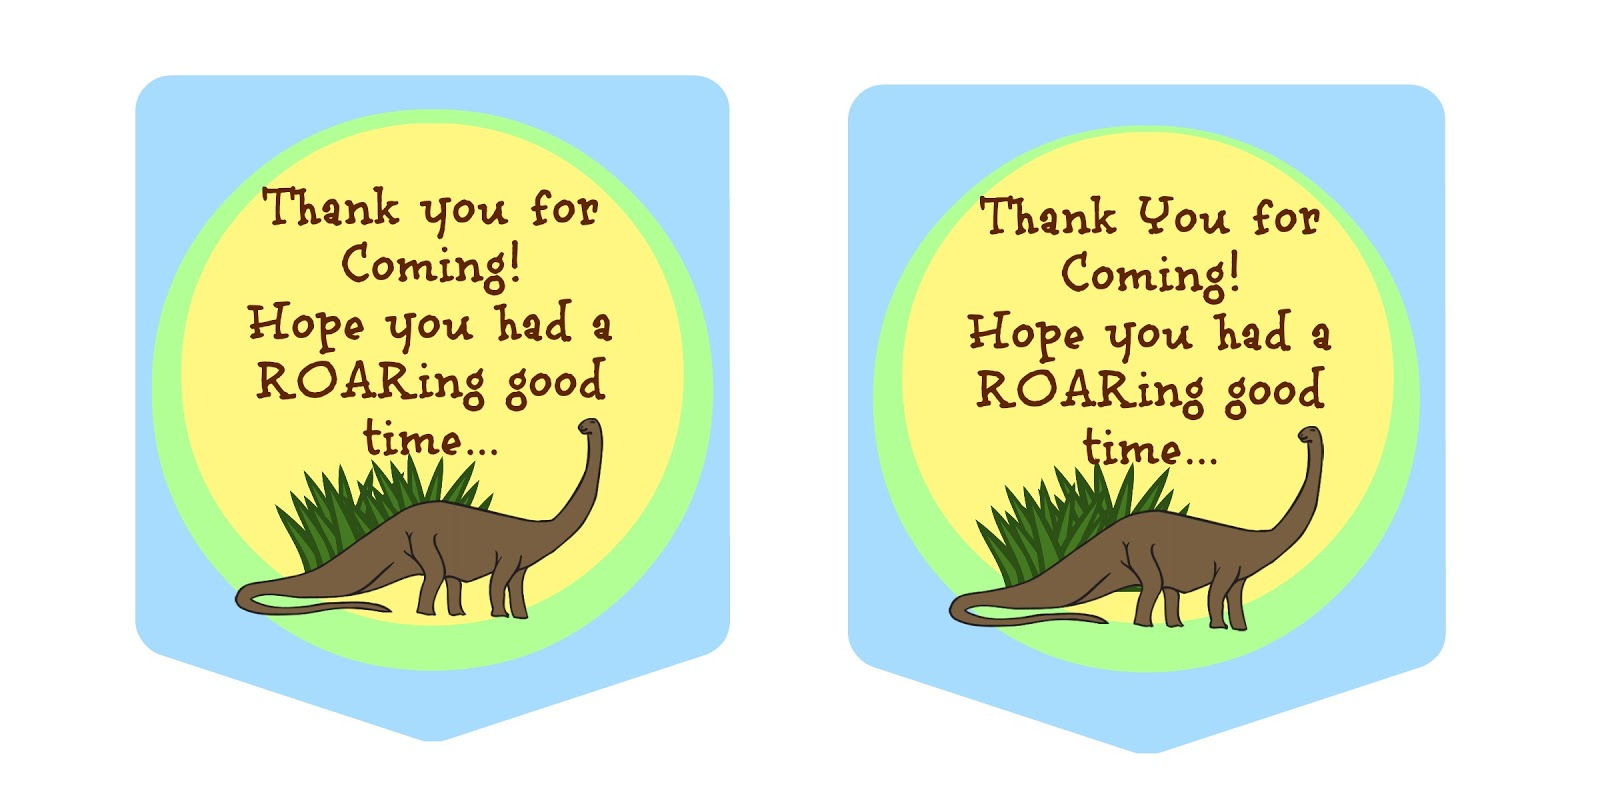 Party With Dinosaurs - Dinosaur Themed Birthday Party - Free Printable Dinosaur Labels